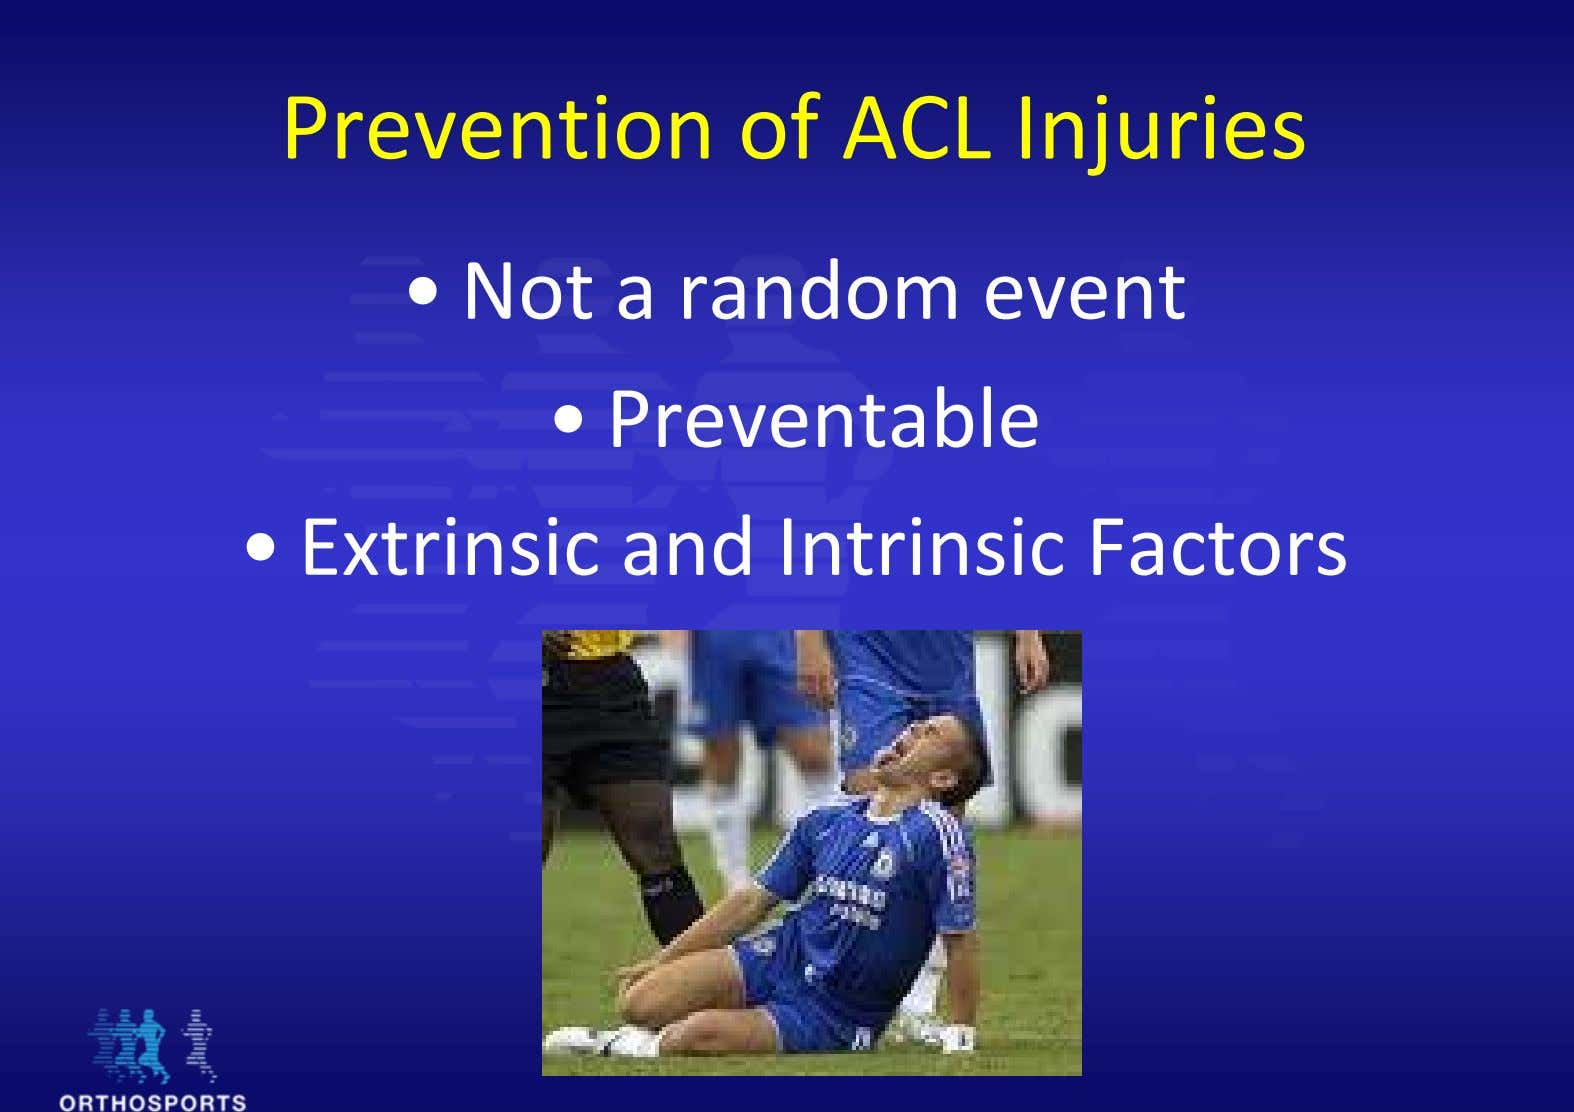 Prevention of ACL Injuries • Not a random event • Preventable • Extrinsic and Intrinsic